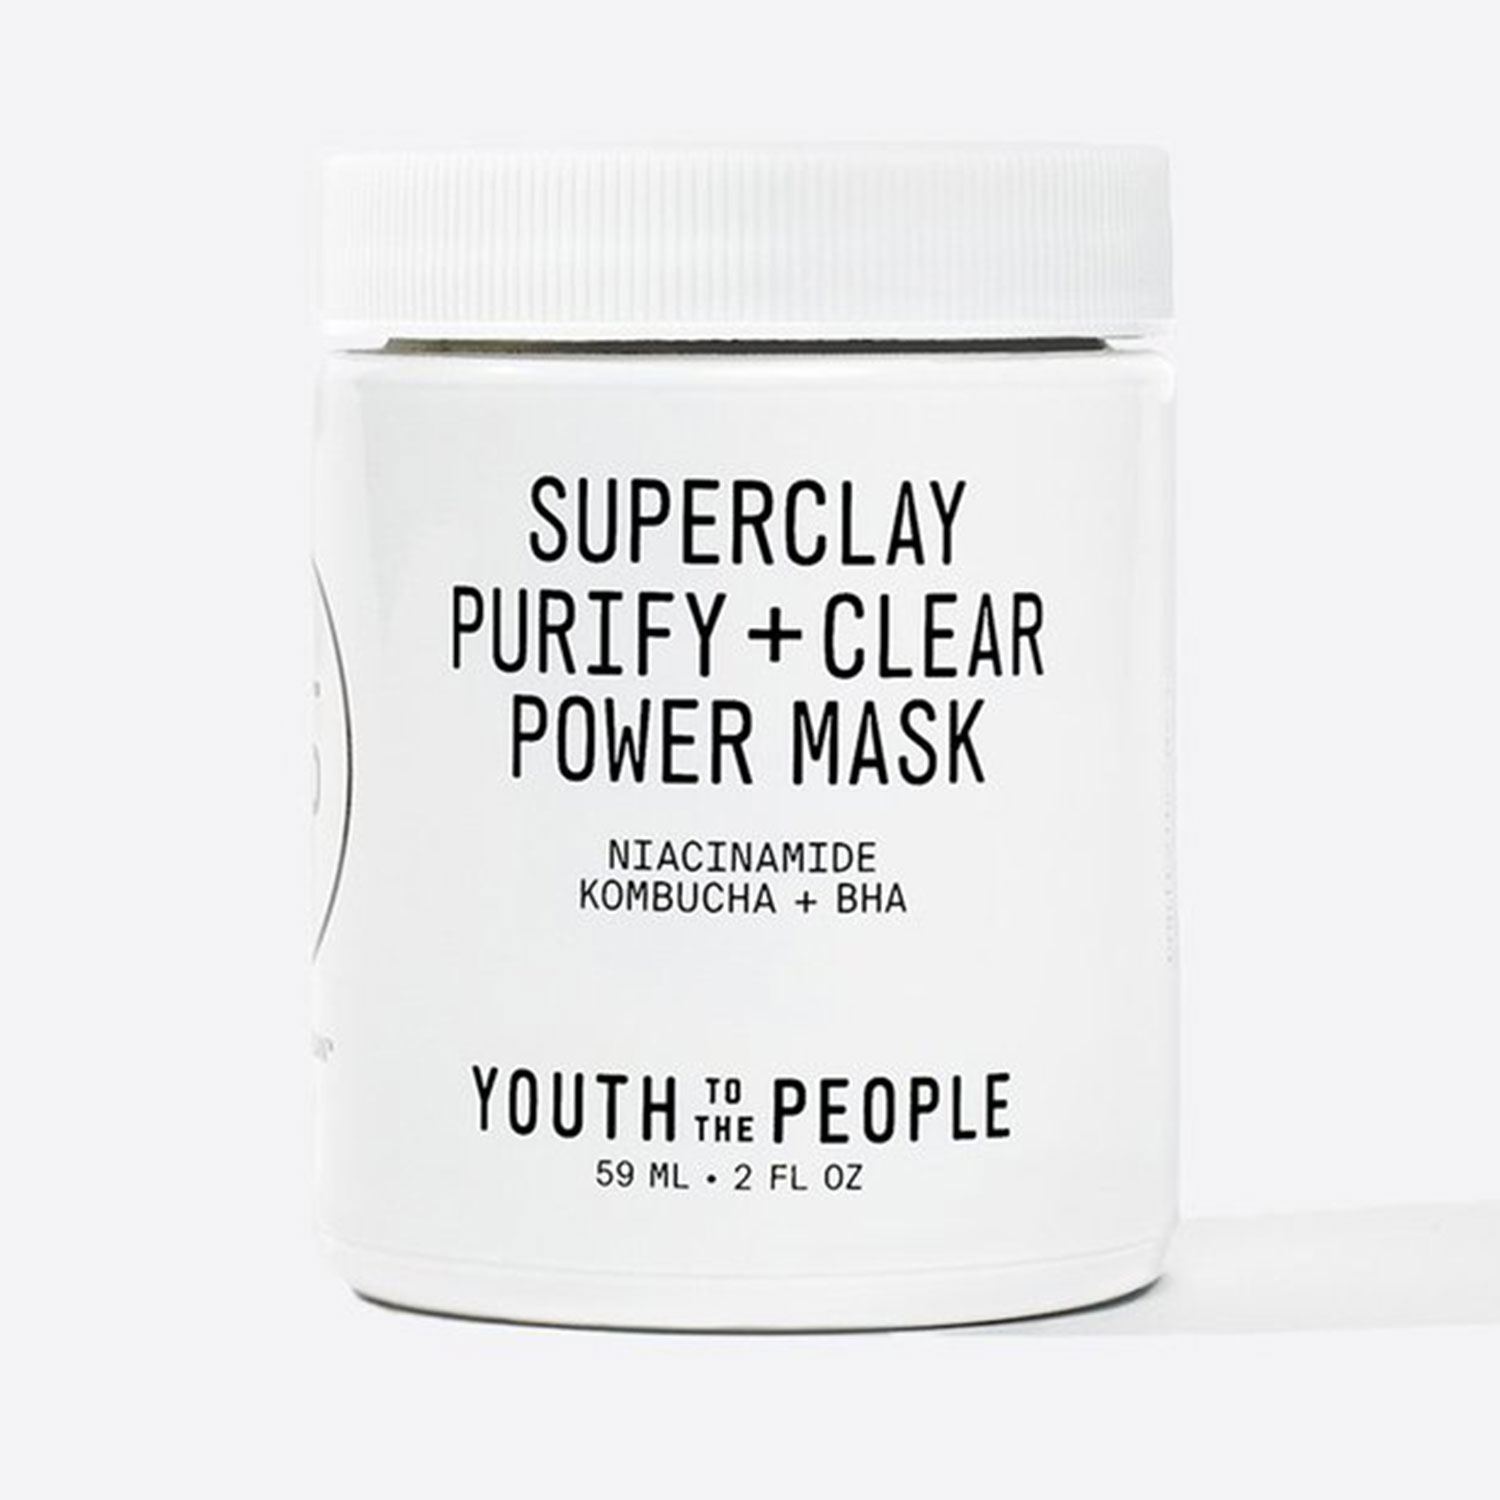 Superclay Purify + Clear Power Mask